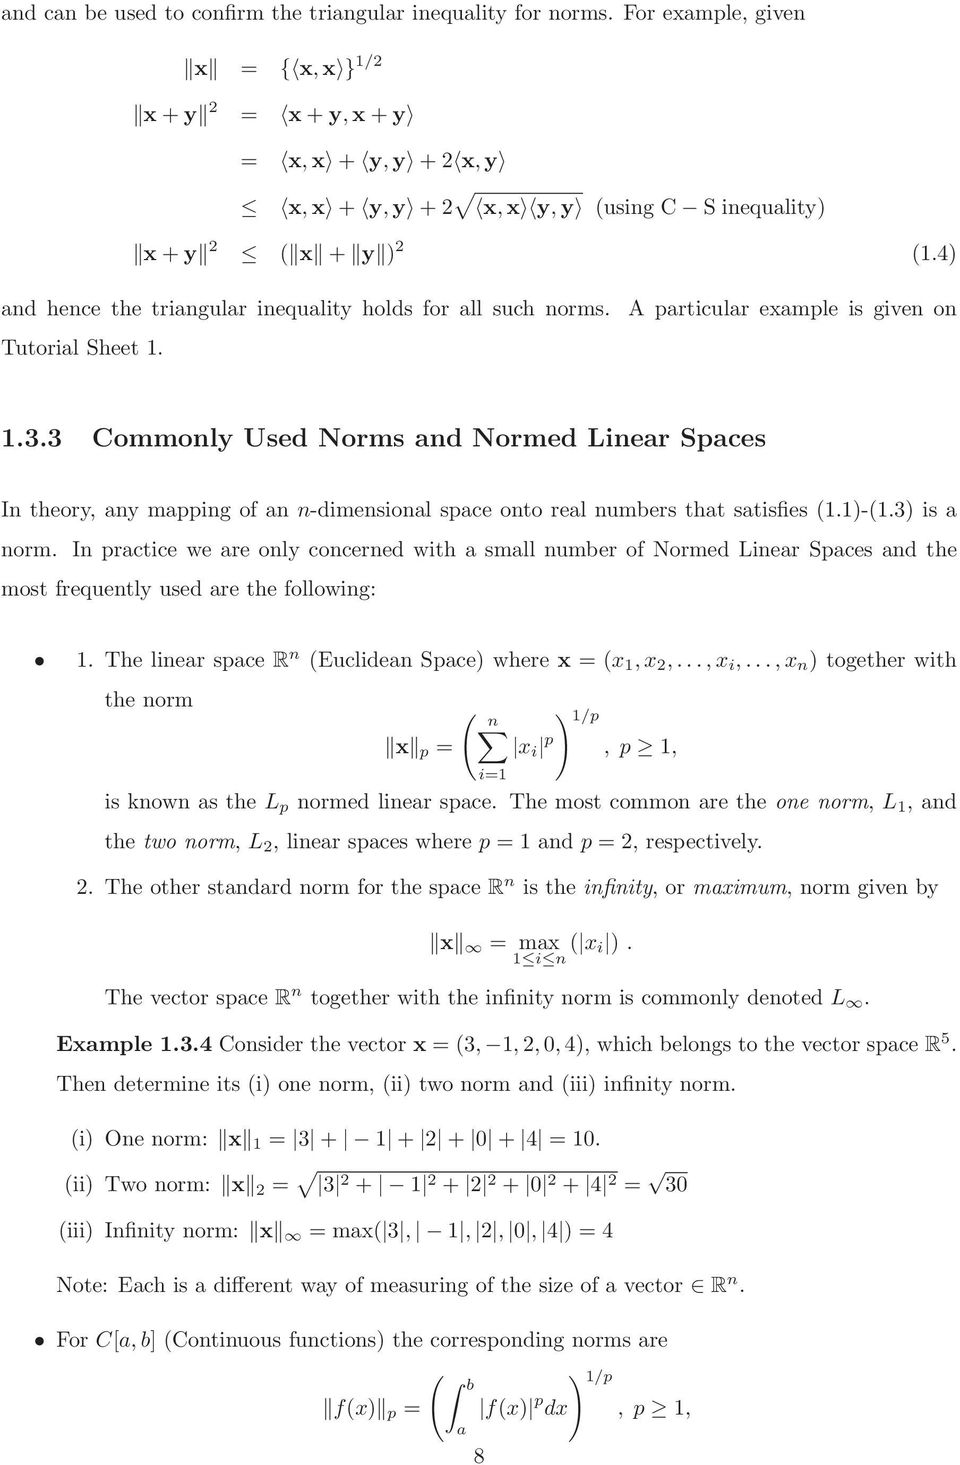 n-dimensional space onto real numbers that satisfies (11)-(13) is a norm In practice we are only concerned with a small number of Normed Linear Spaces and the most frequently used are the following: